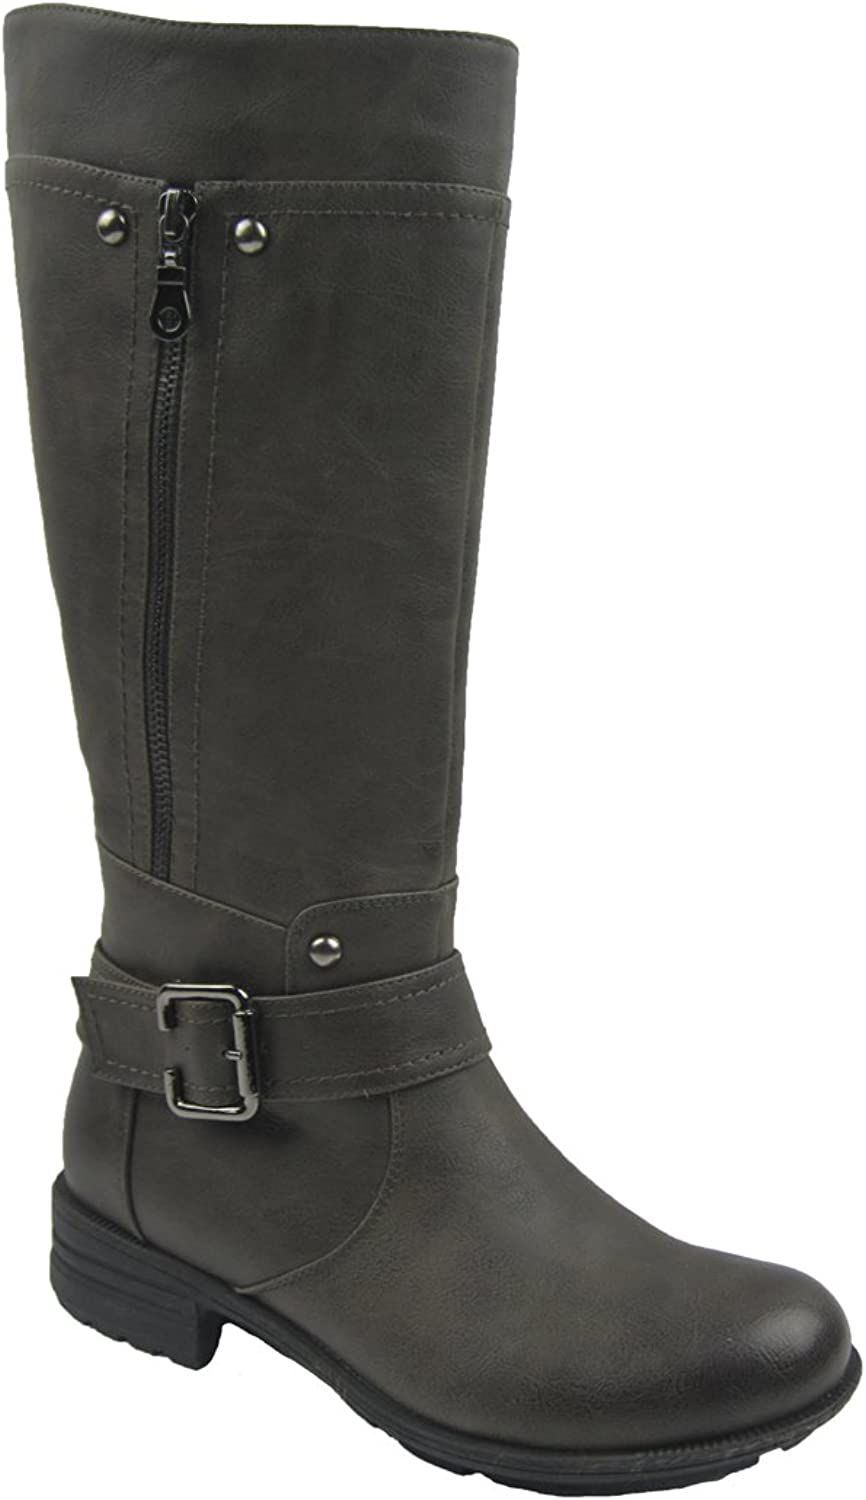 Comfy Moda Women's Meggie Winter Snow Boot Wool Lining Water Resistant Size 6-12